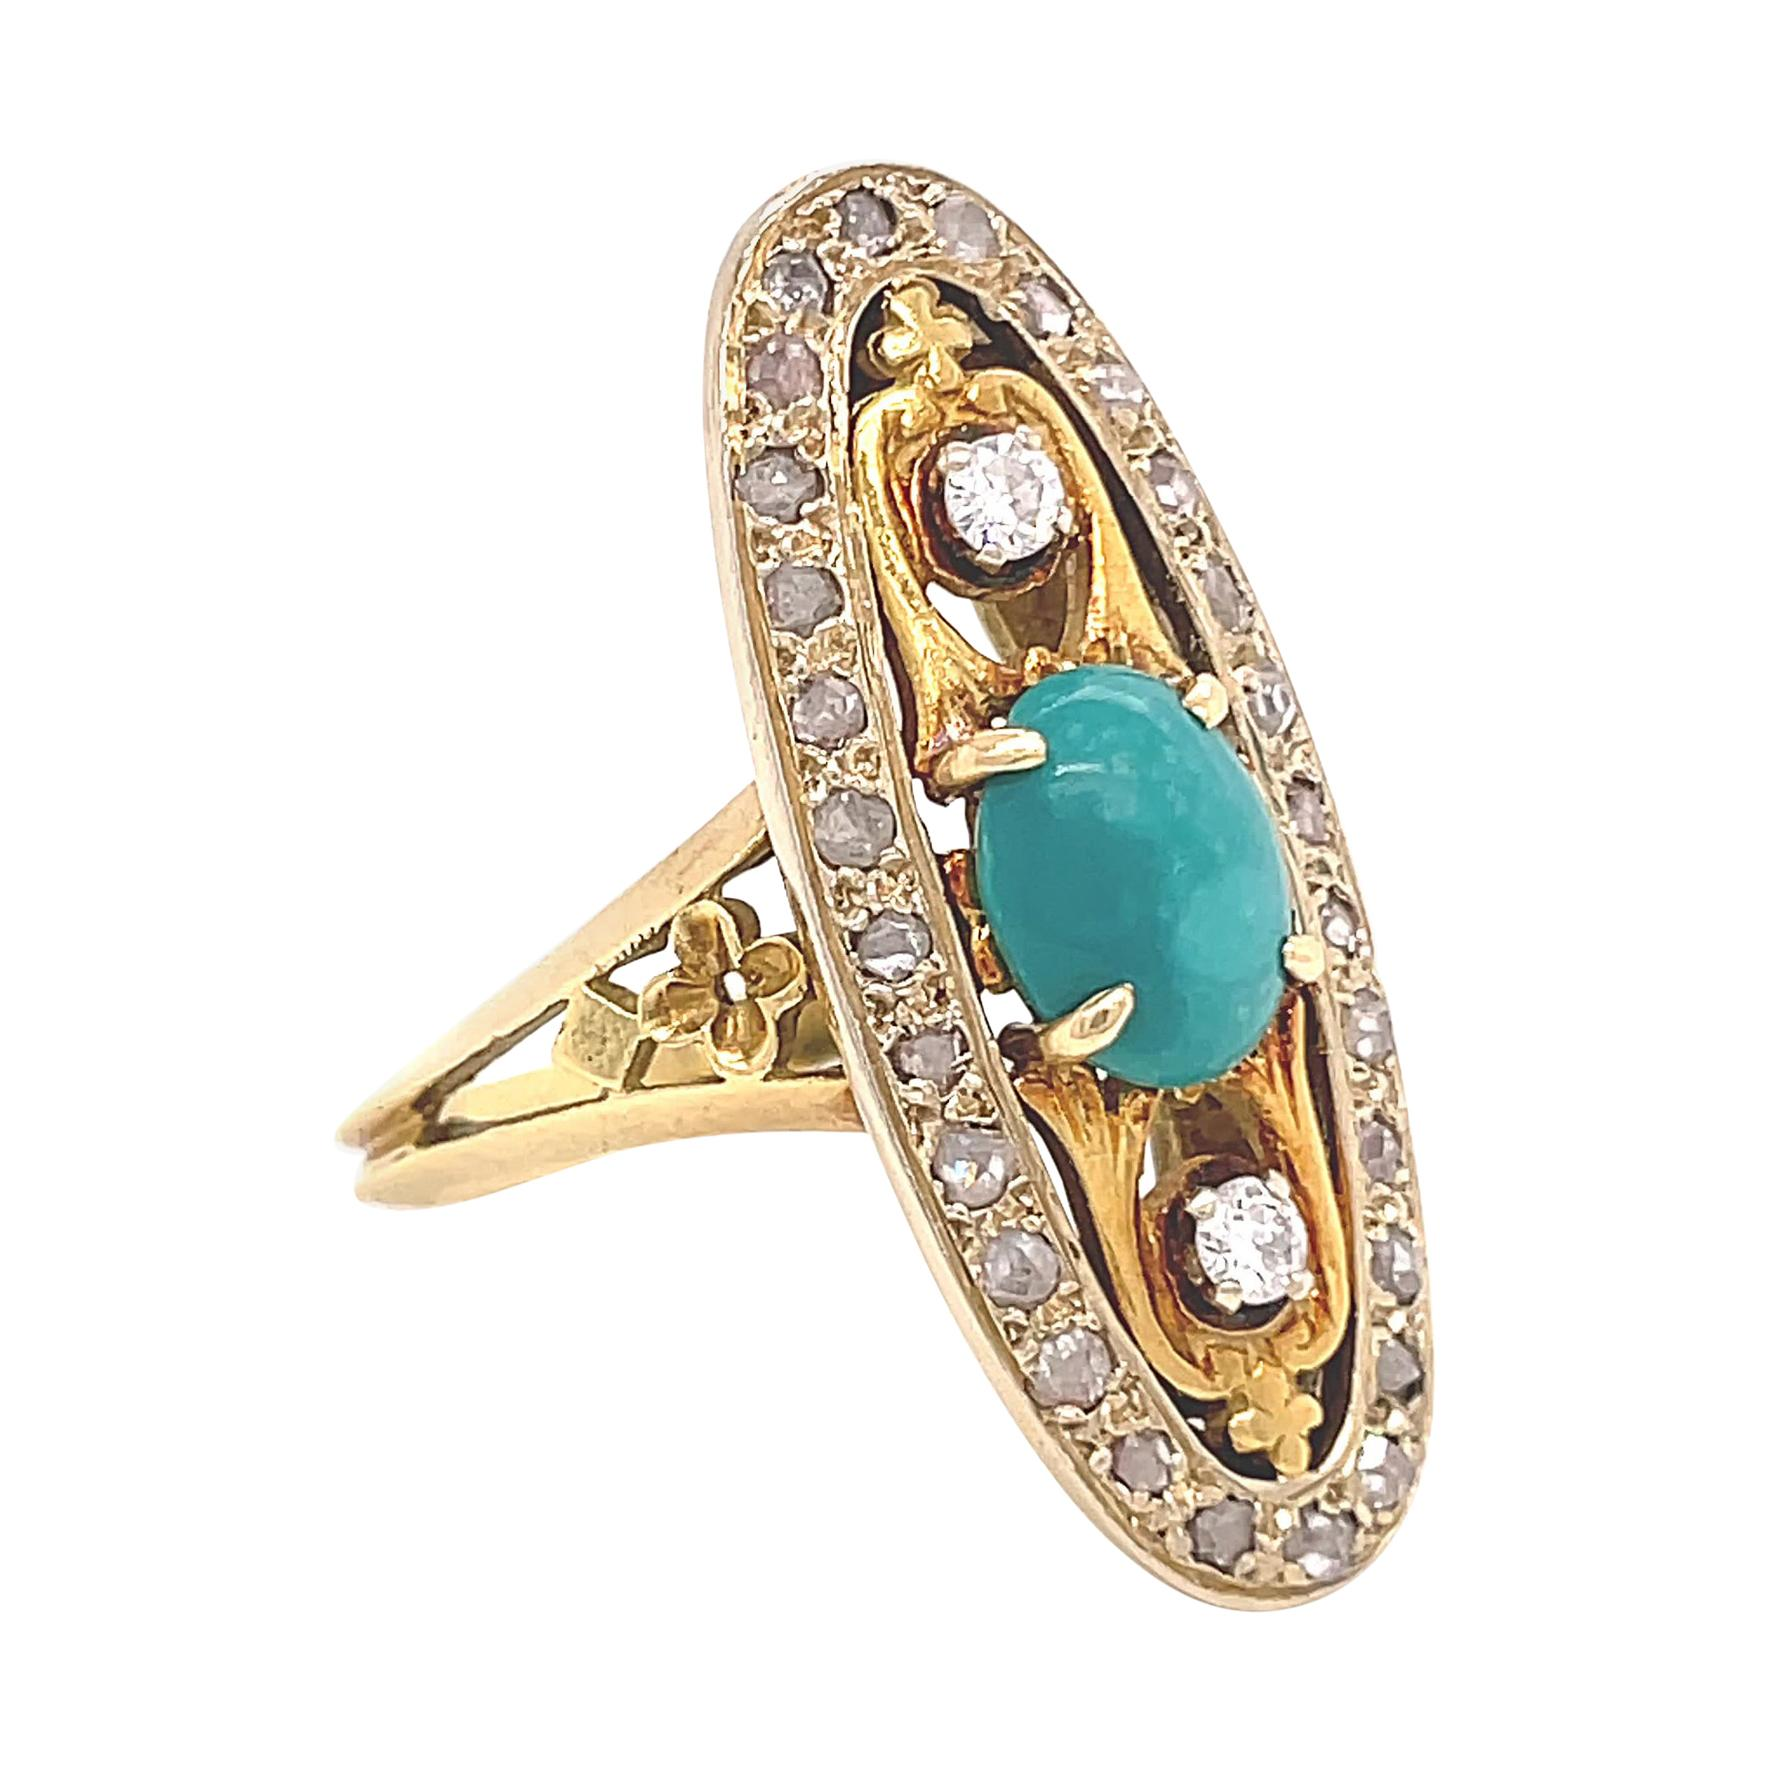 Vintage French Turquoise Diamond Gold Ring